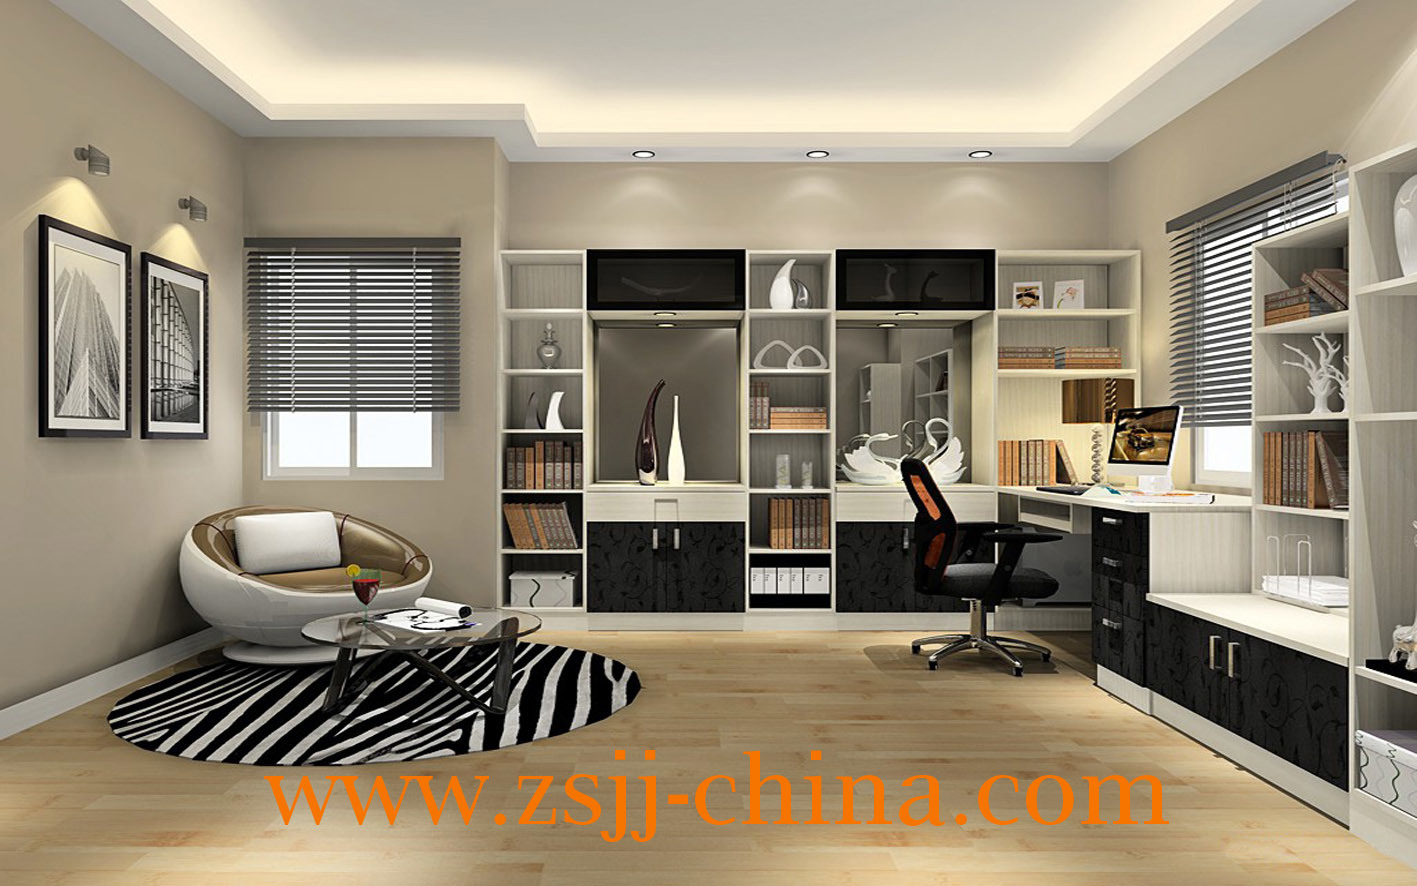 Room study 1 furniture 28 images study room furniture design indiana brw furniture range - Study room furniture designe ...